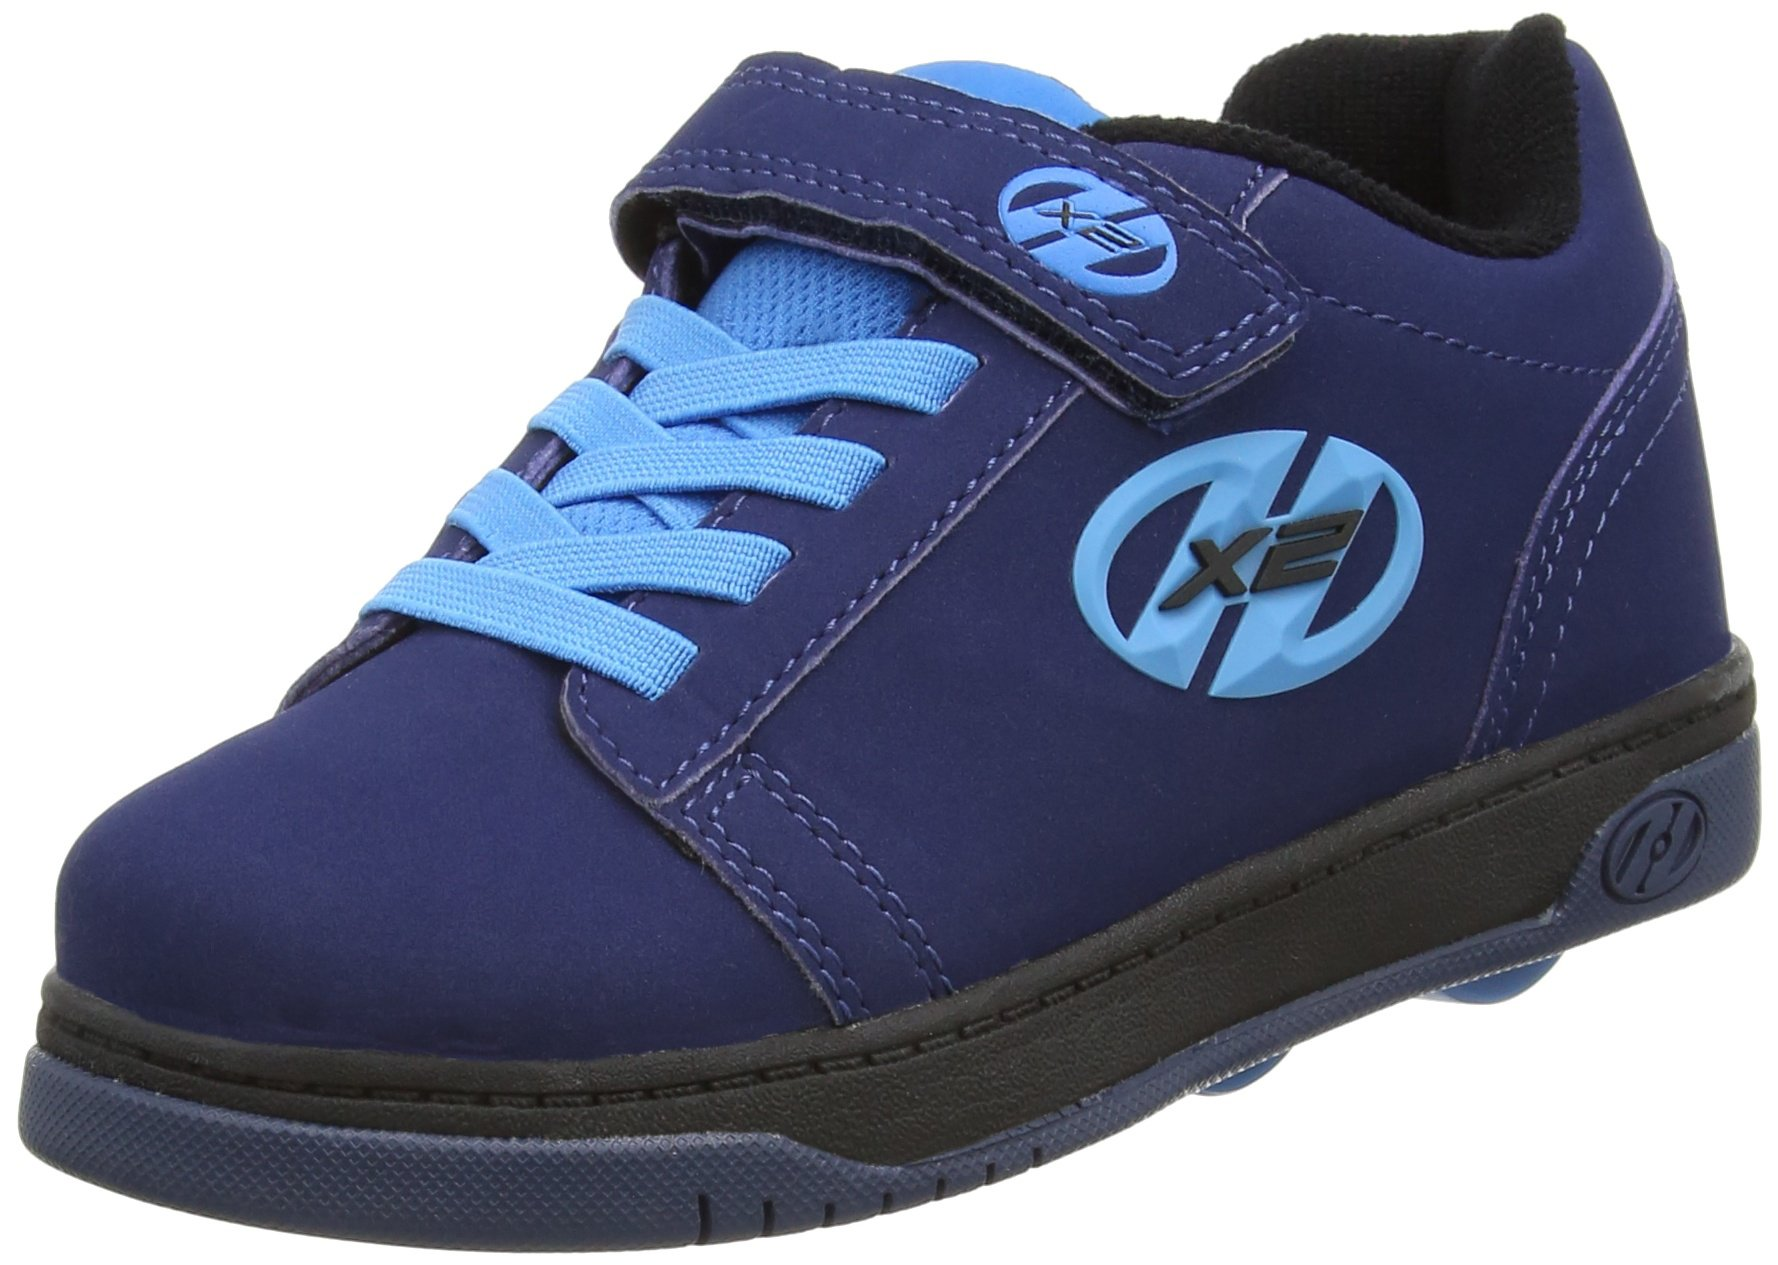 Heelys Shoes Dual Up Shoes - Navy/New